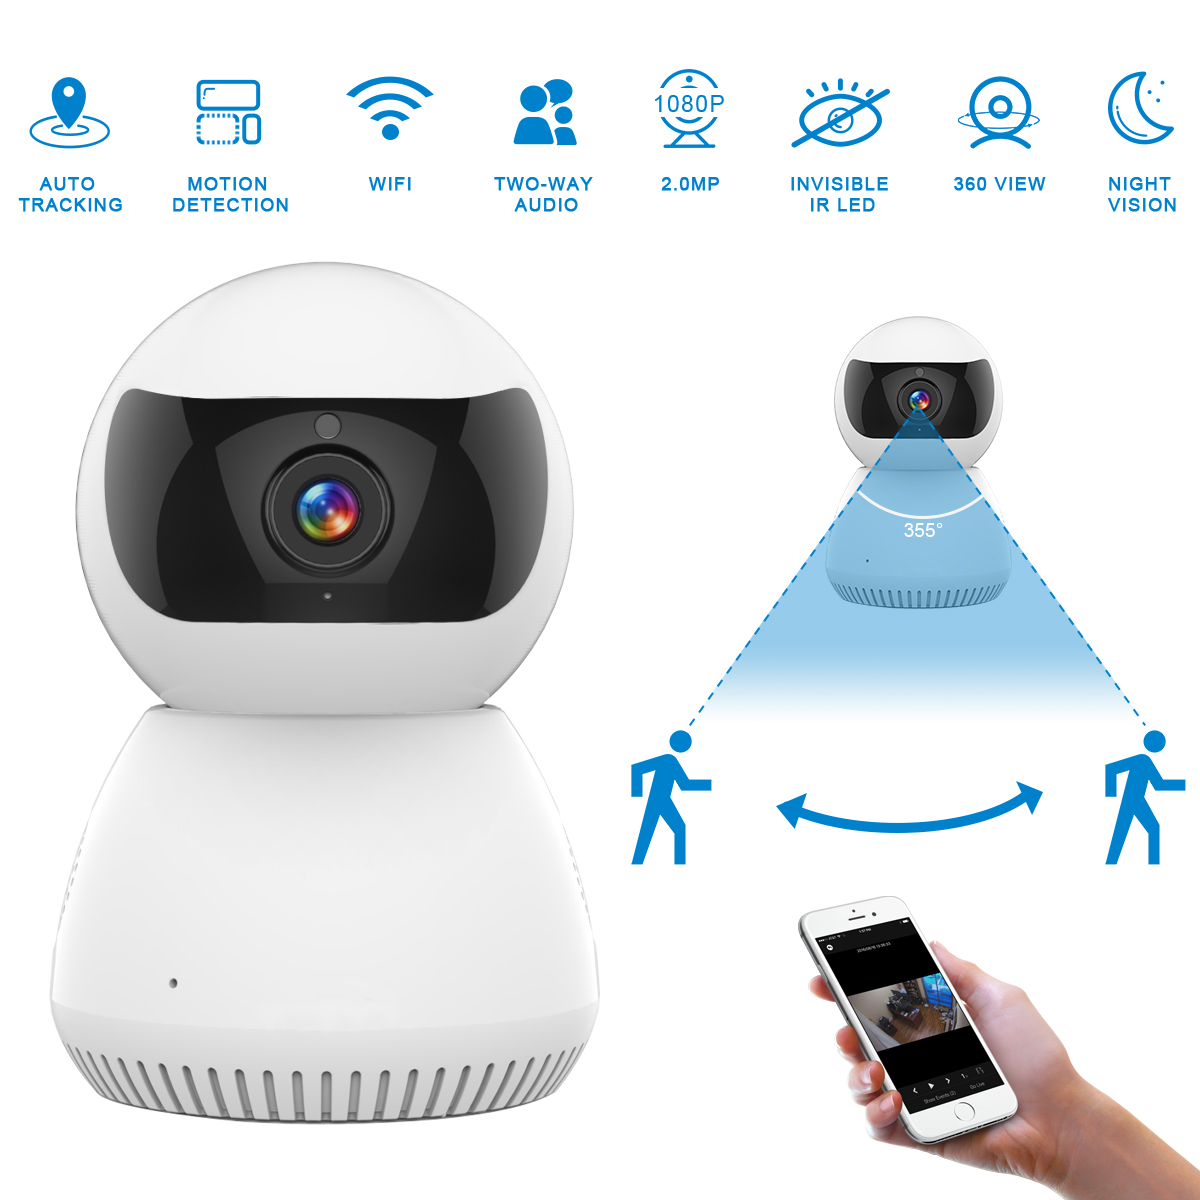 H94b6a1f997ac4fdcad57671aa00b7fe5n JOOAN IP Camera 1080p Wireless Home Security IP Camera Surveillance Camera Wifi  CCTV Camera Baby Monitor with 30days free